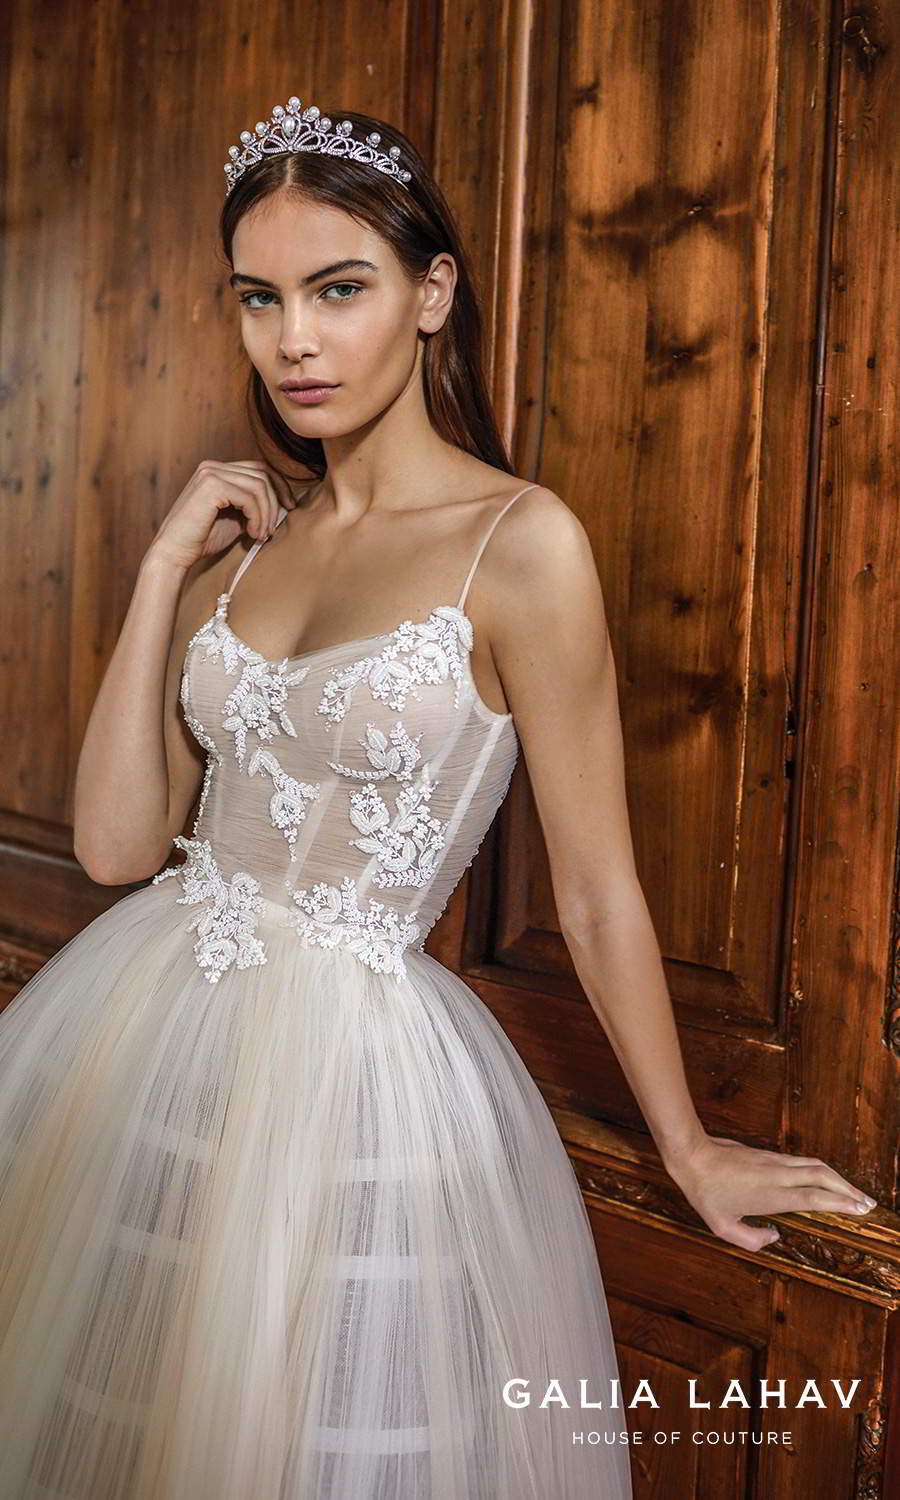 galia lahav fall 2021 bridal couture sleeveless thin straps semi sweetheart neckline embellished bodice a line ball gown wedding dress ombre blush champagne skirt chapel train (cherie) zv